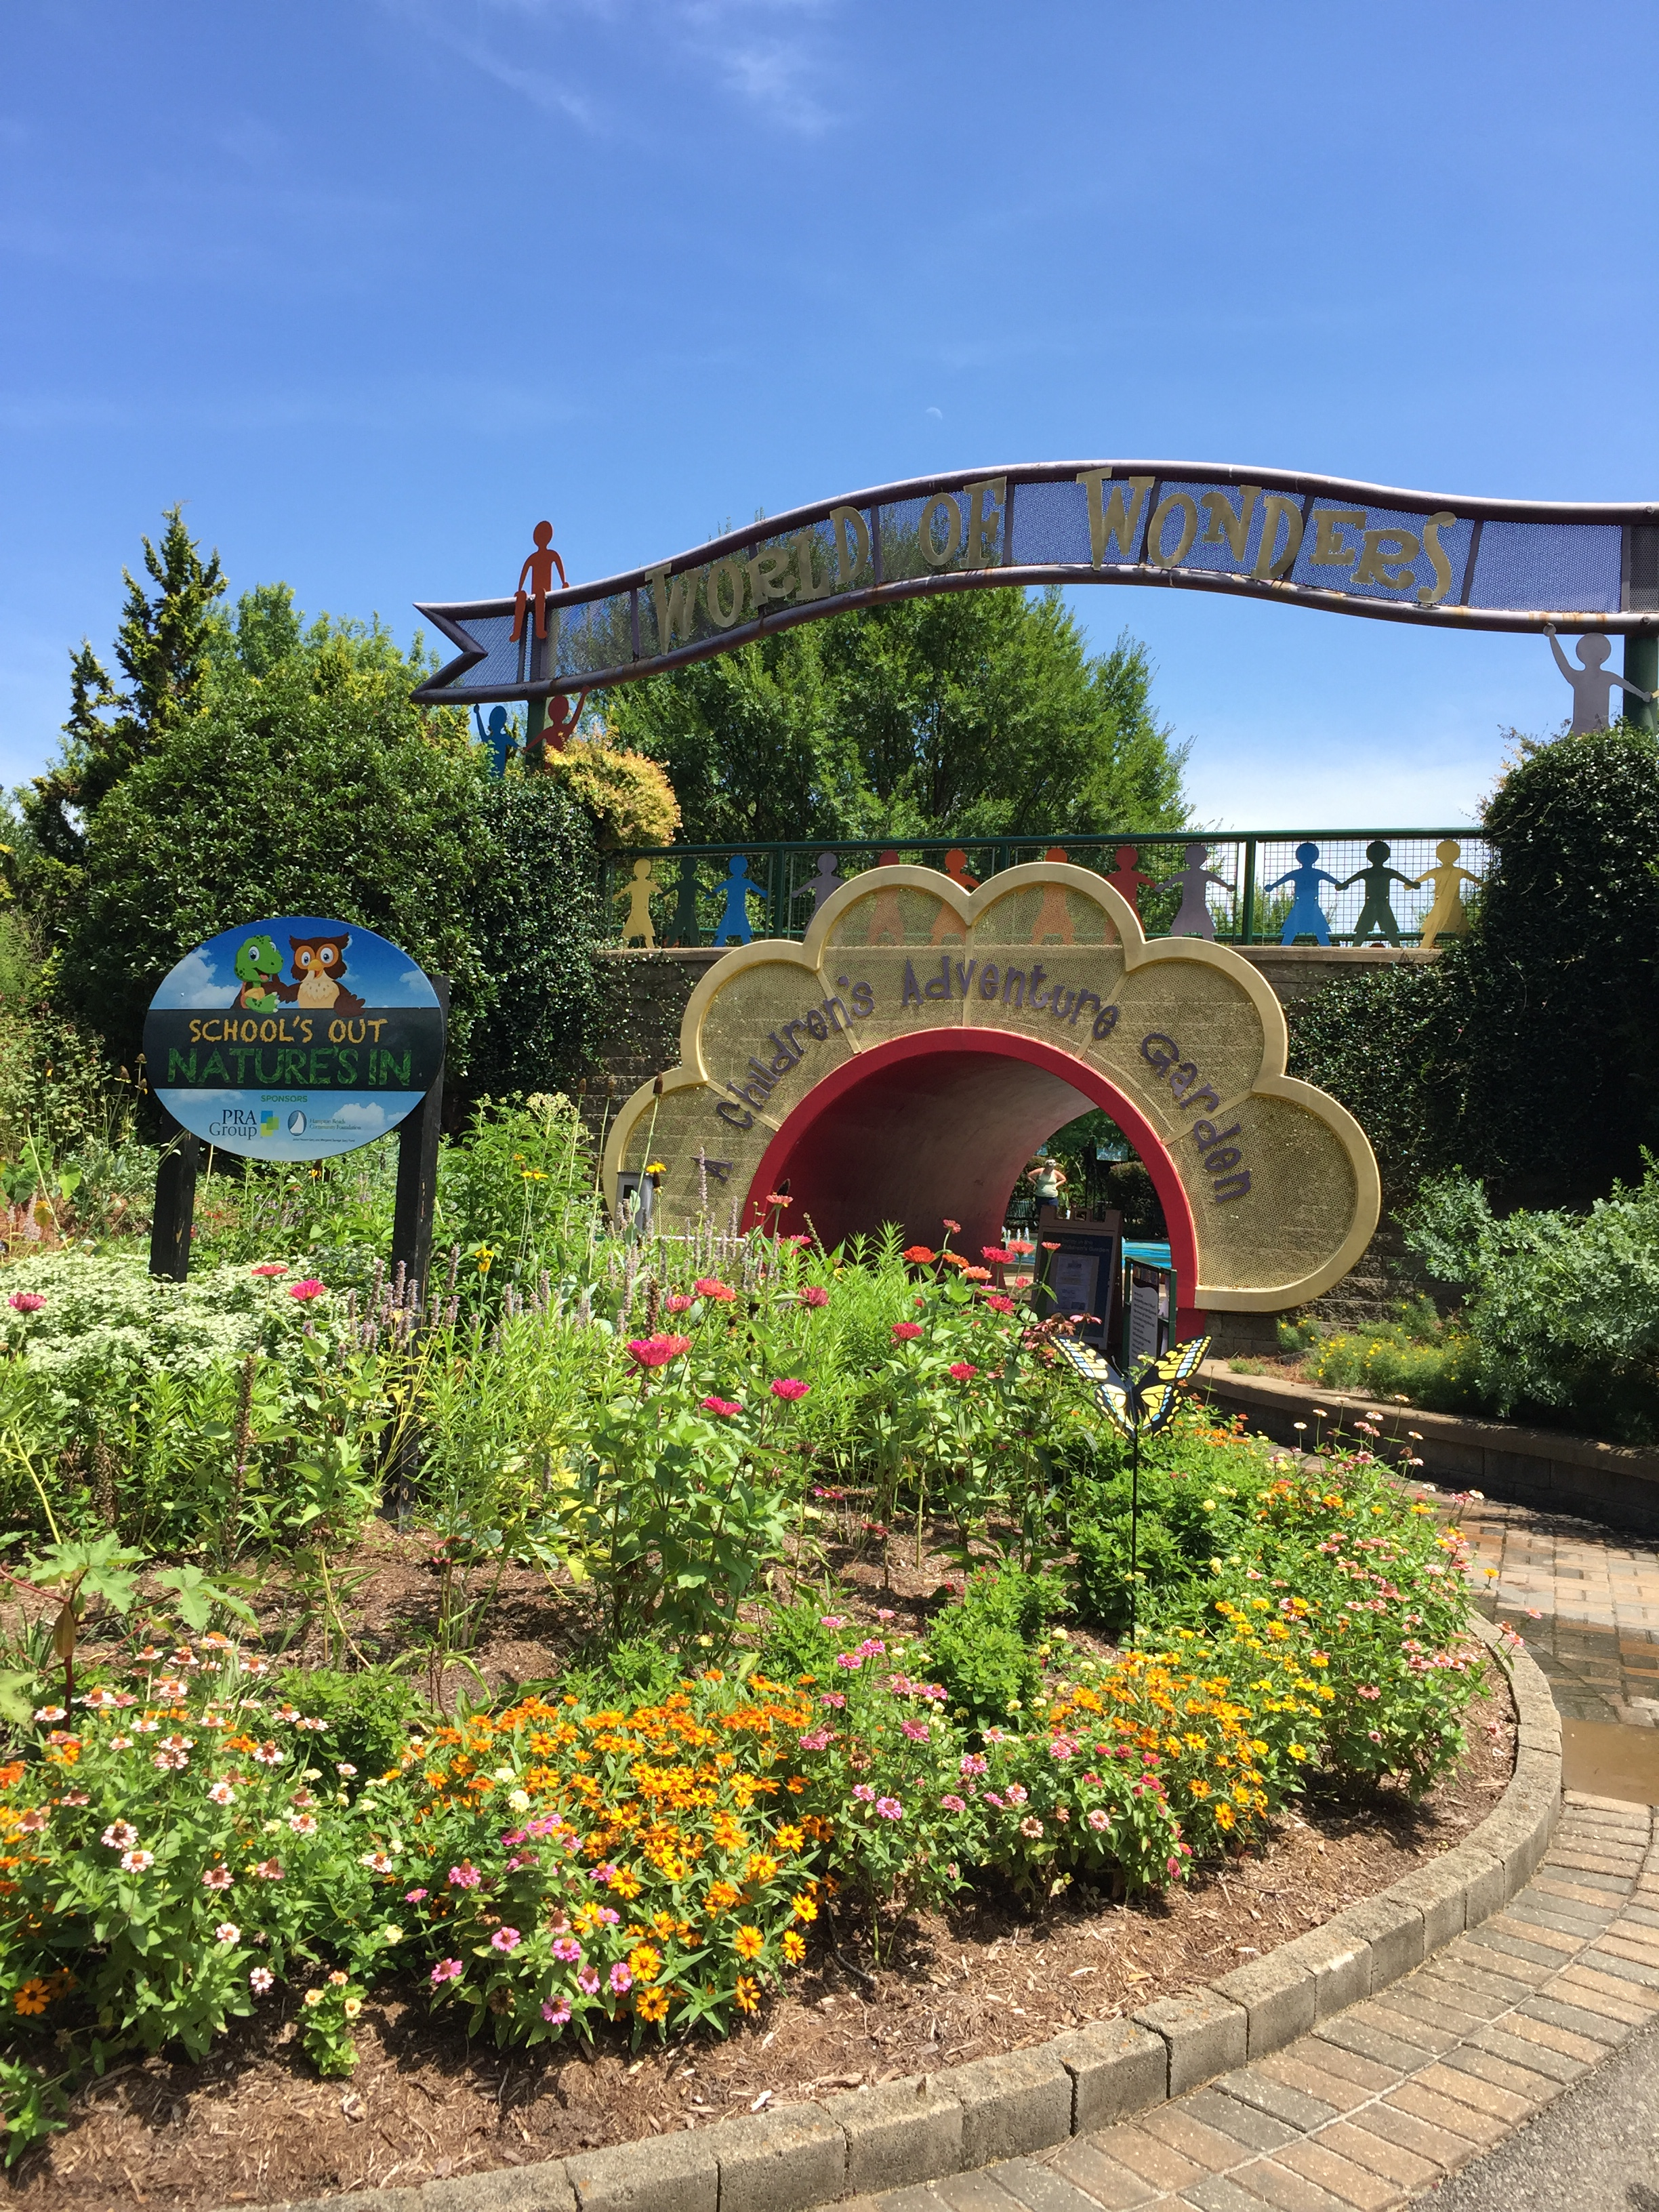 The World of Wonder Garden welcomes children and their parents for staff- or family-guided activities. Photo ©2018 Elaine Mills.